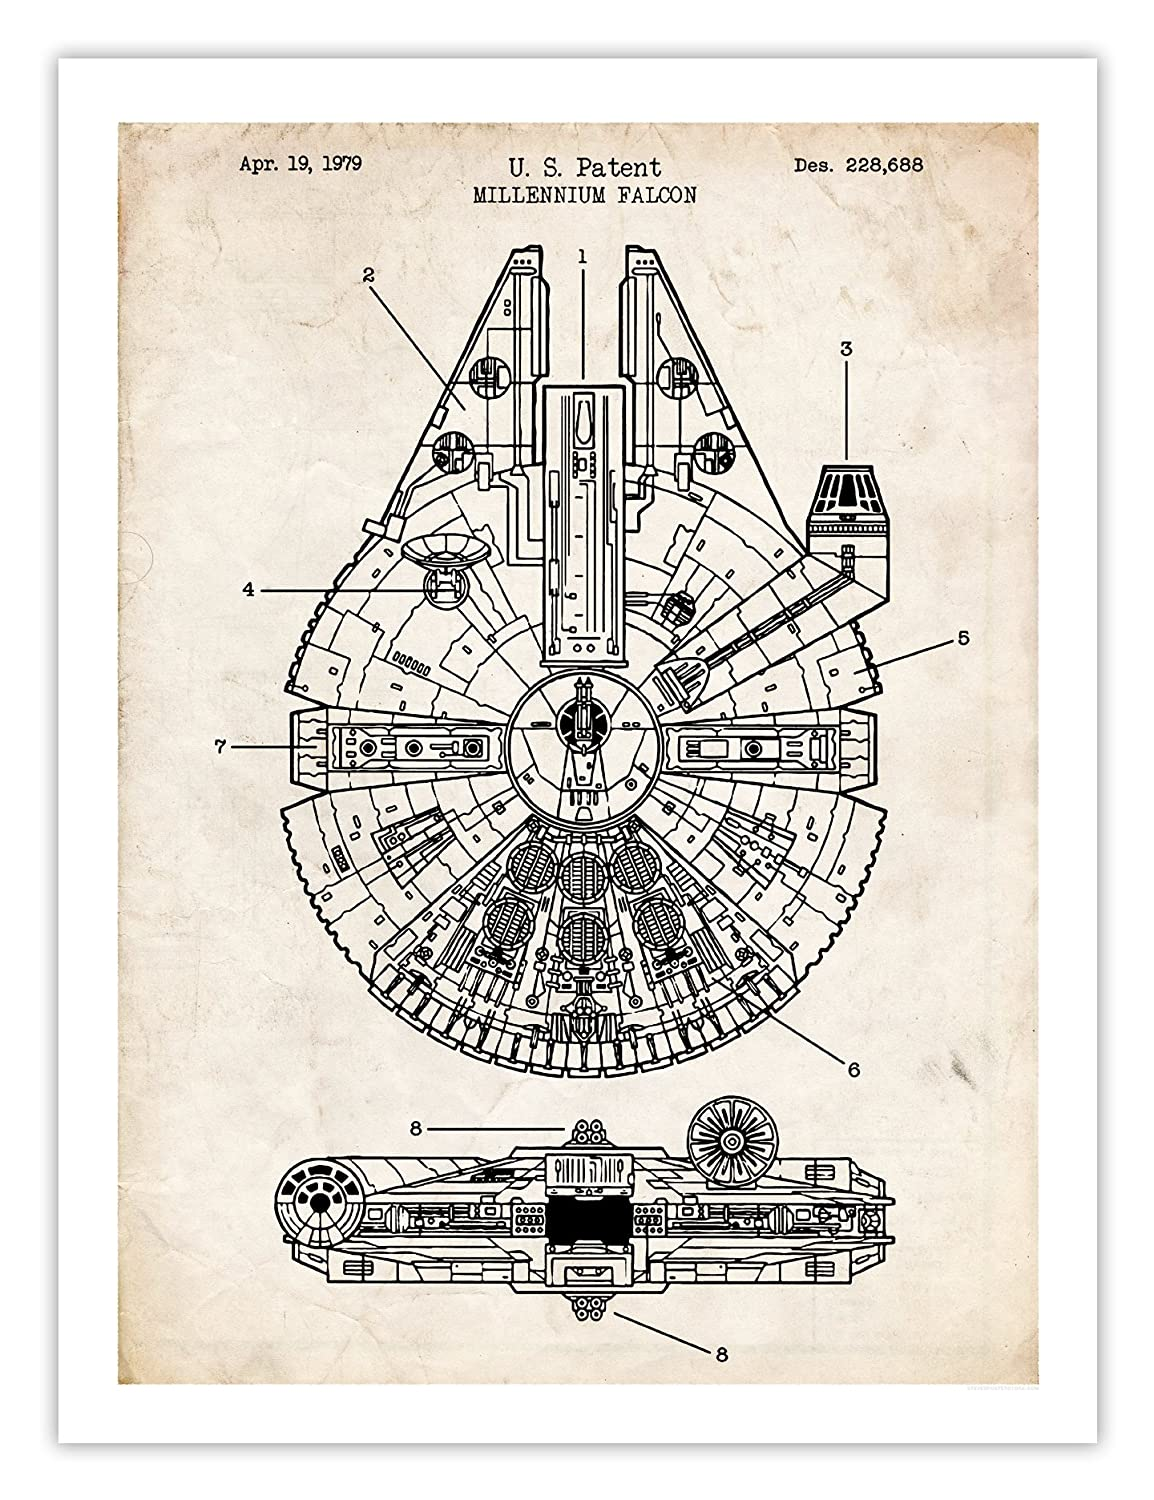 Star Wars Decor Items: The Falcon print